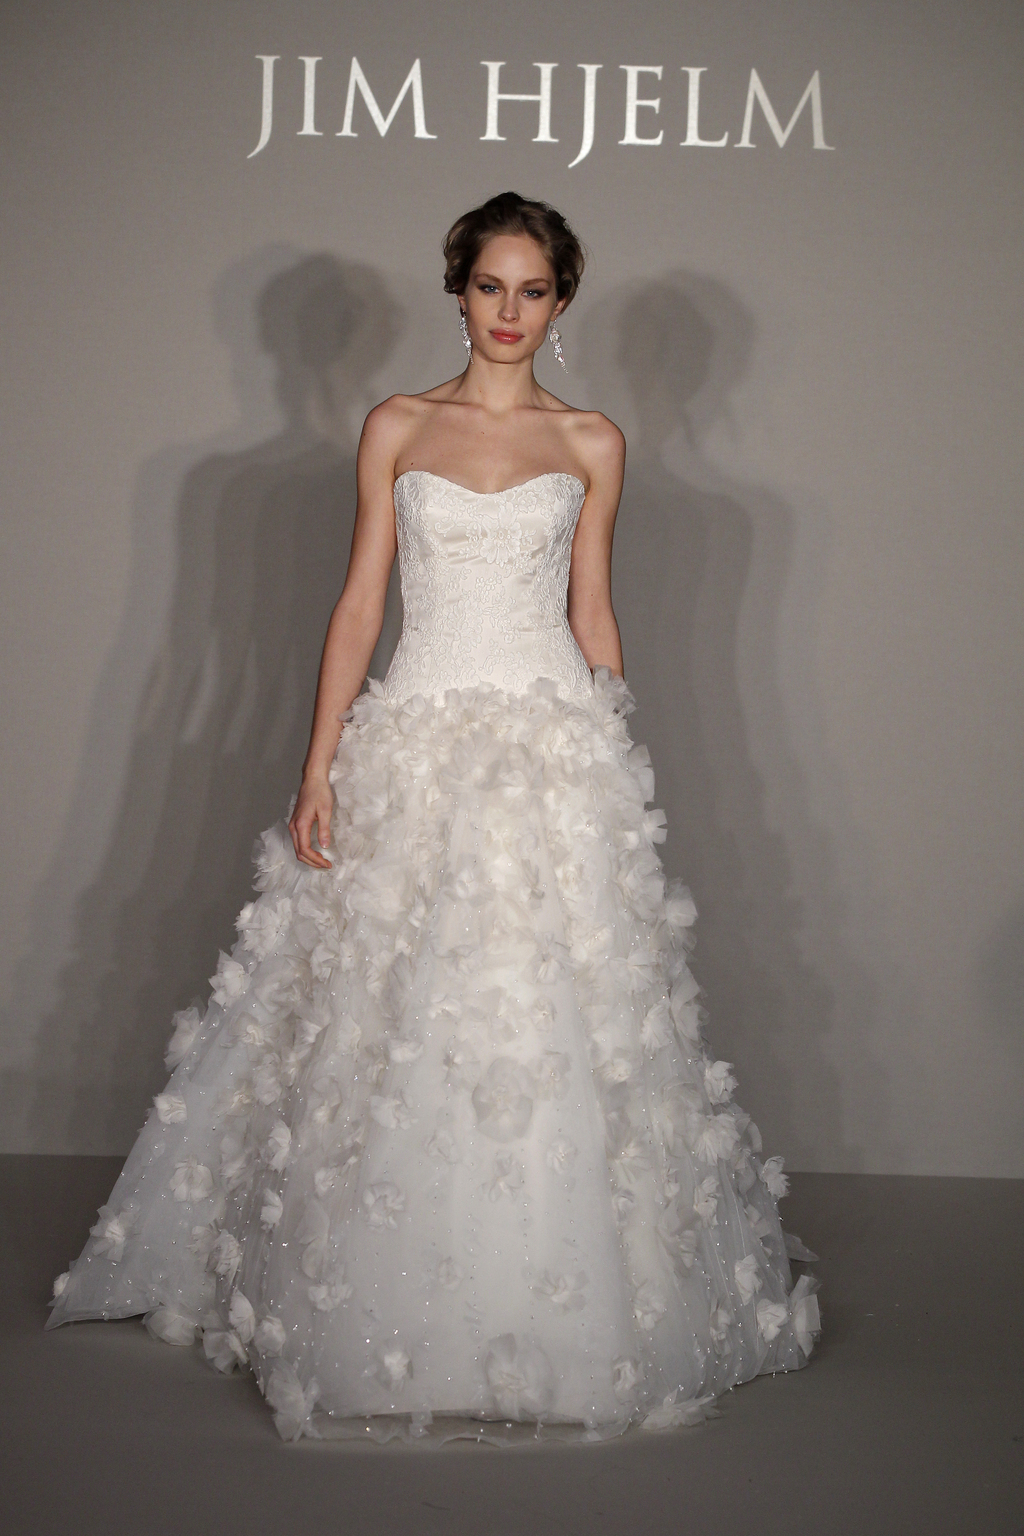 Jim-hjelm-wedding-dress-spring-2012-bridal-gowns-8217.full